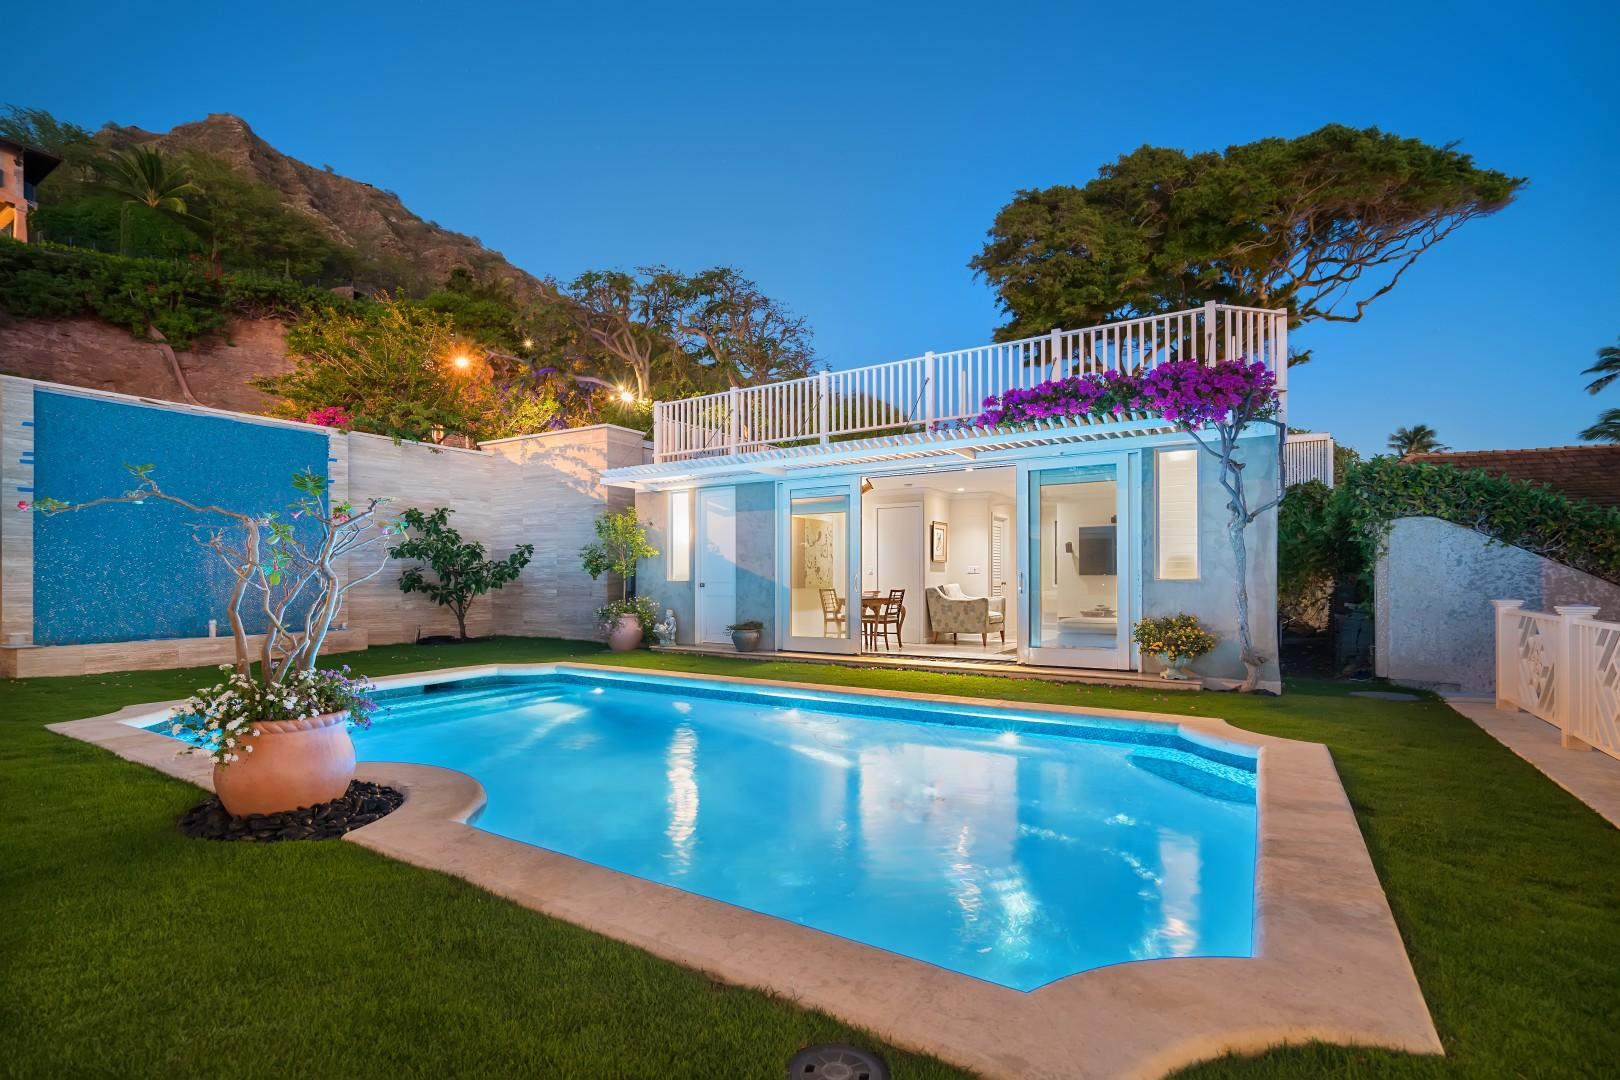 Pool and pool house with Diamond Head in the background